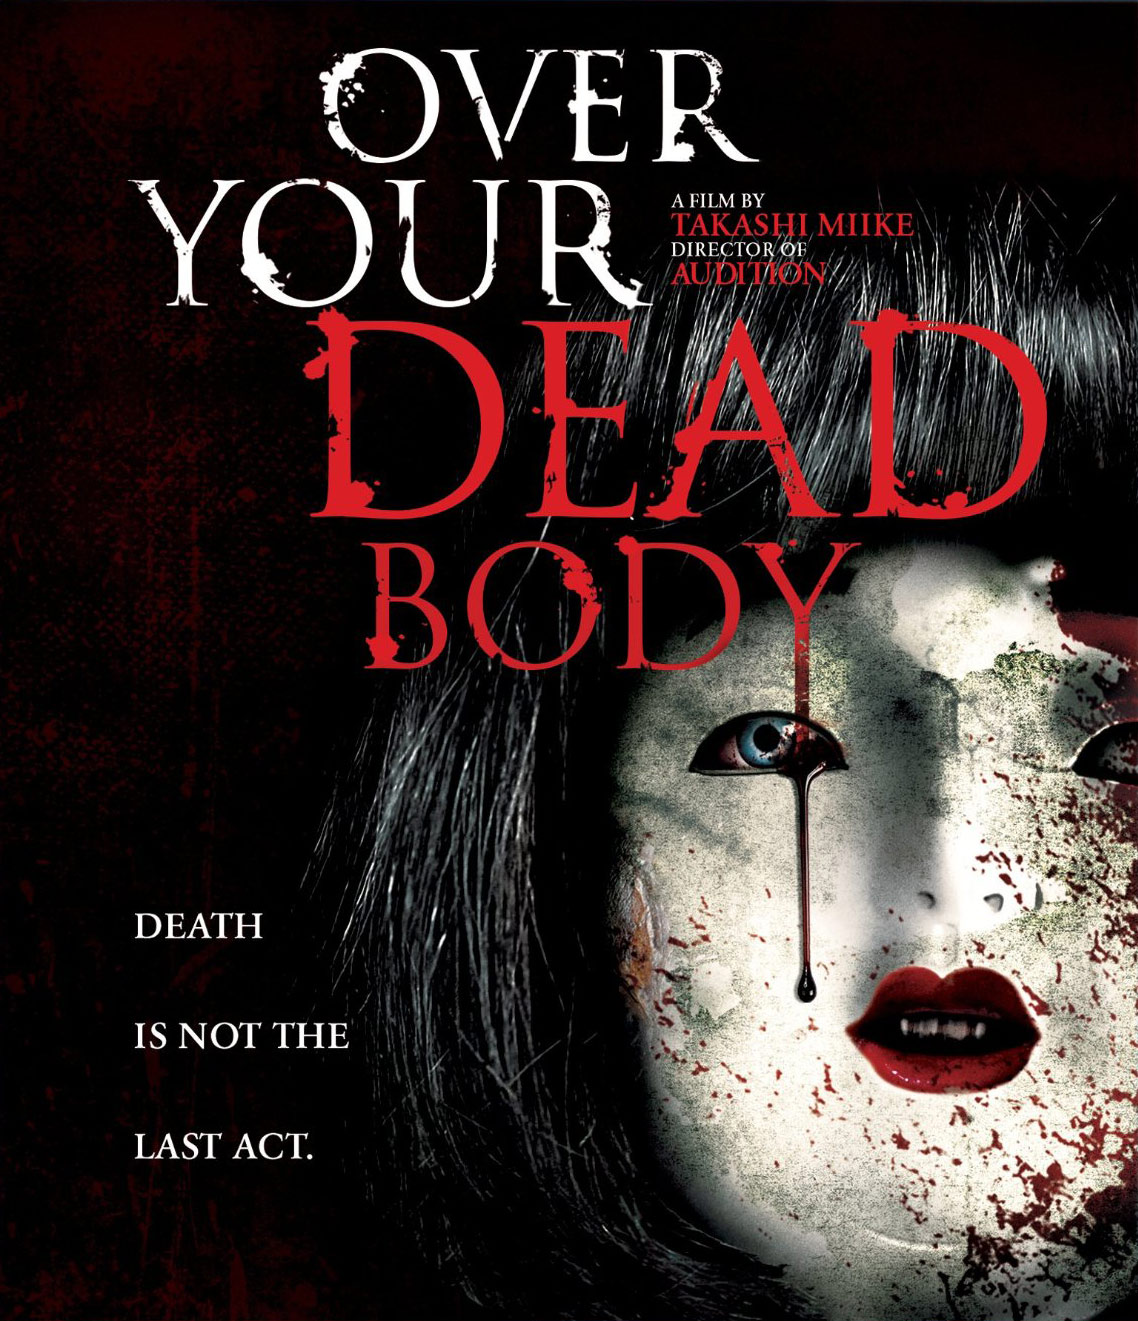 over-your-dead-body-takashi-miike-horror-film-images